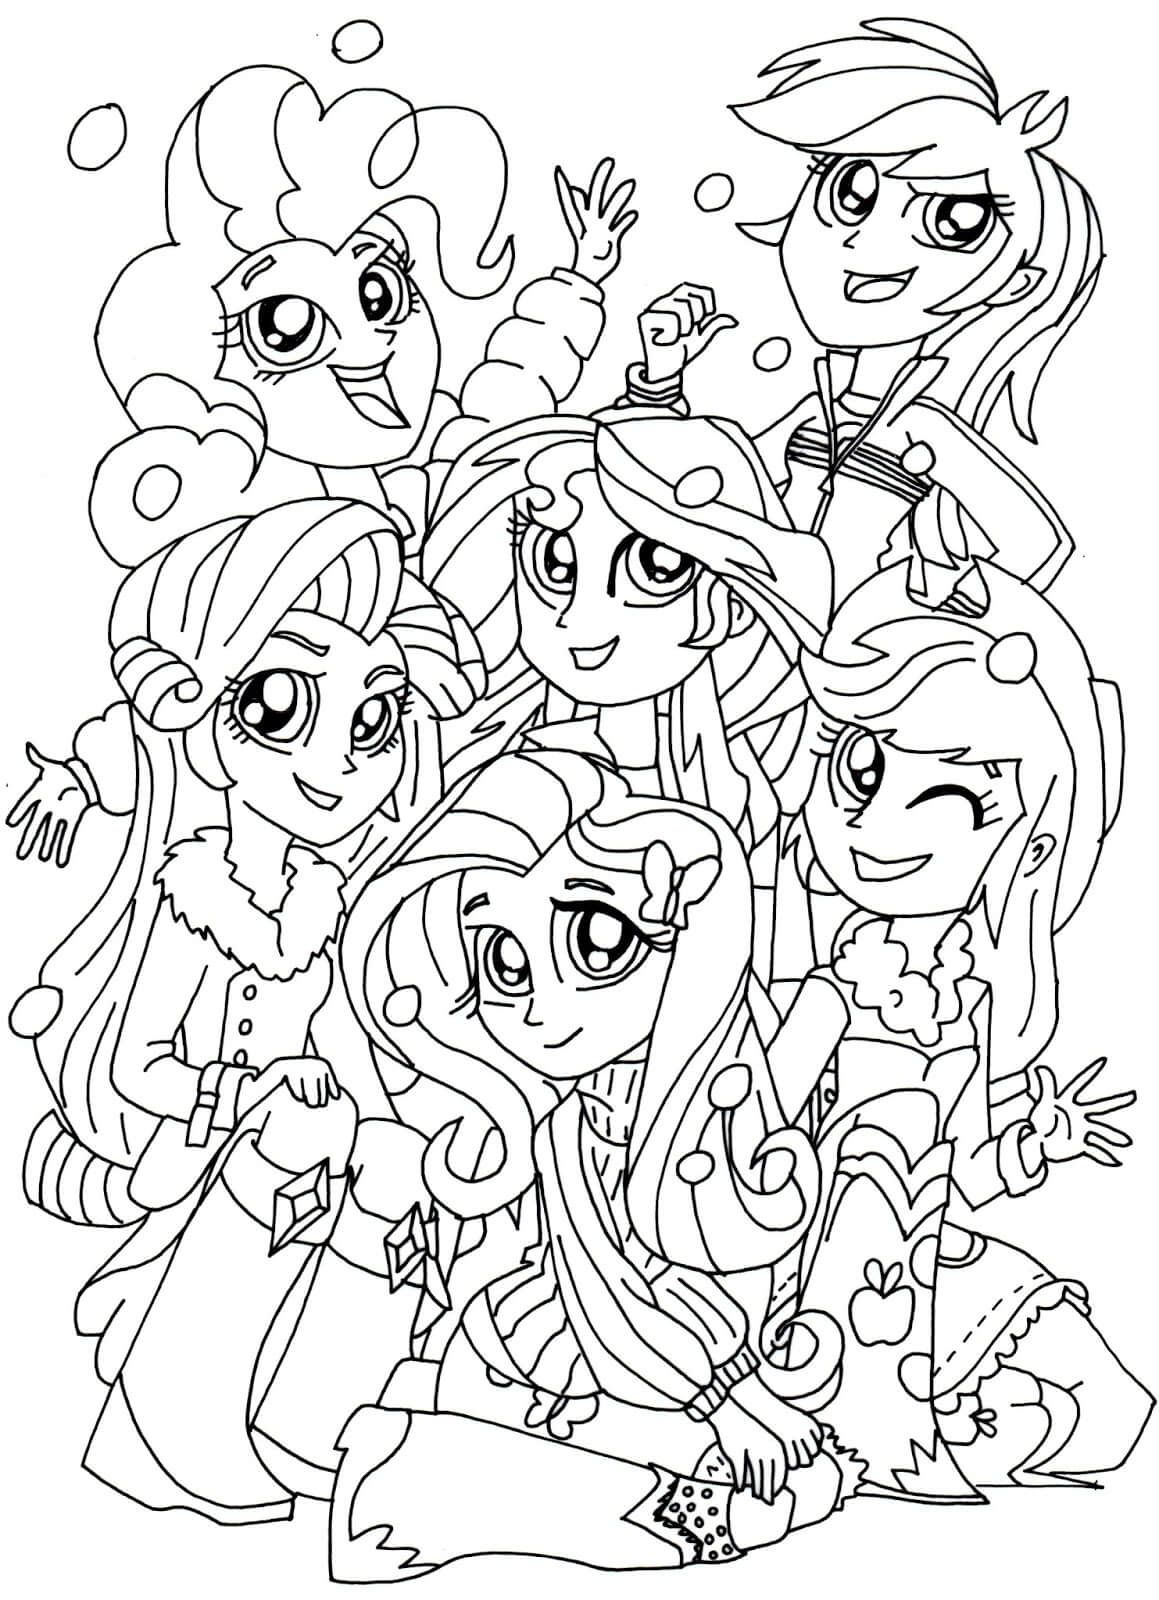 My Little Pony Fluttershy Ausmalbilder : My Little Pony Equestria Girls Coloring Pages Equestria Girls